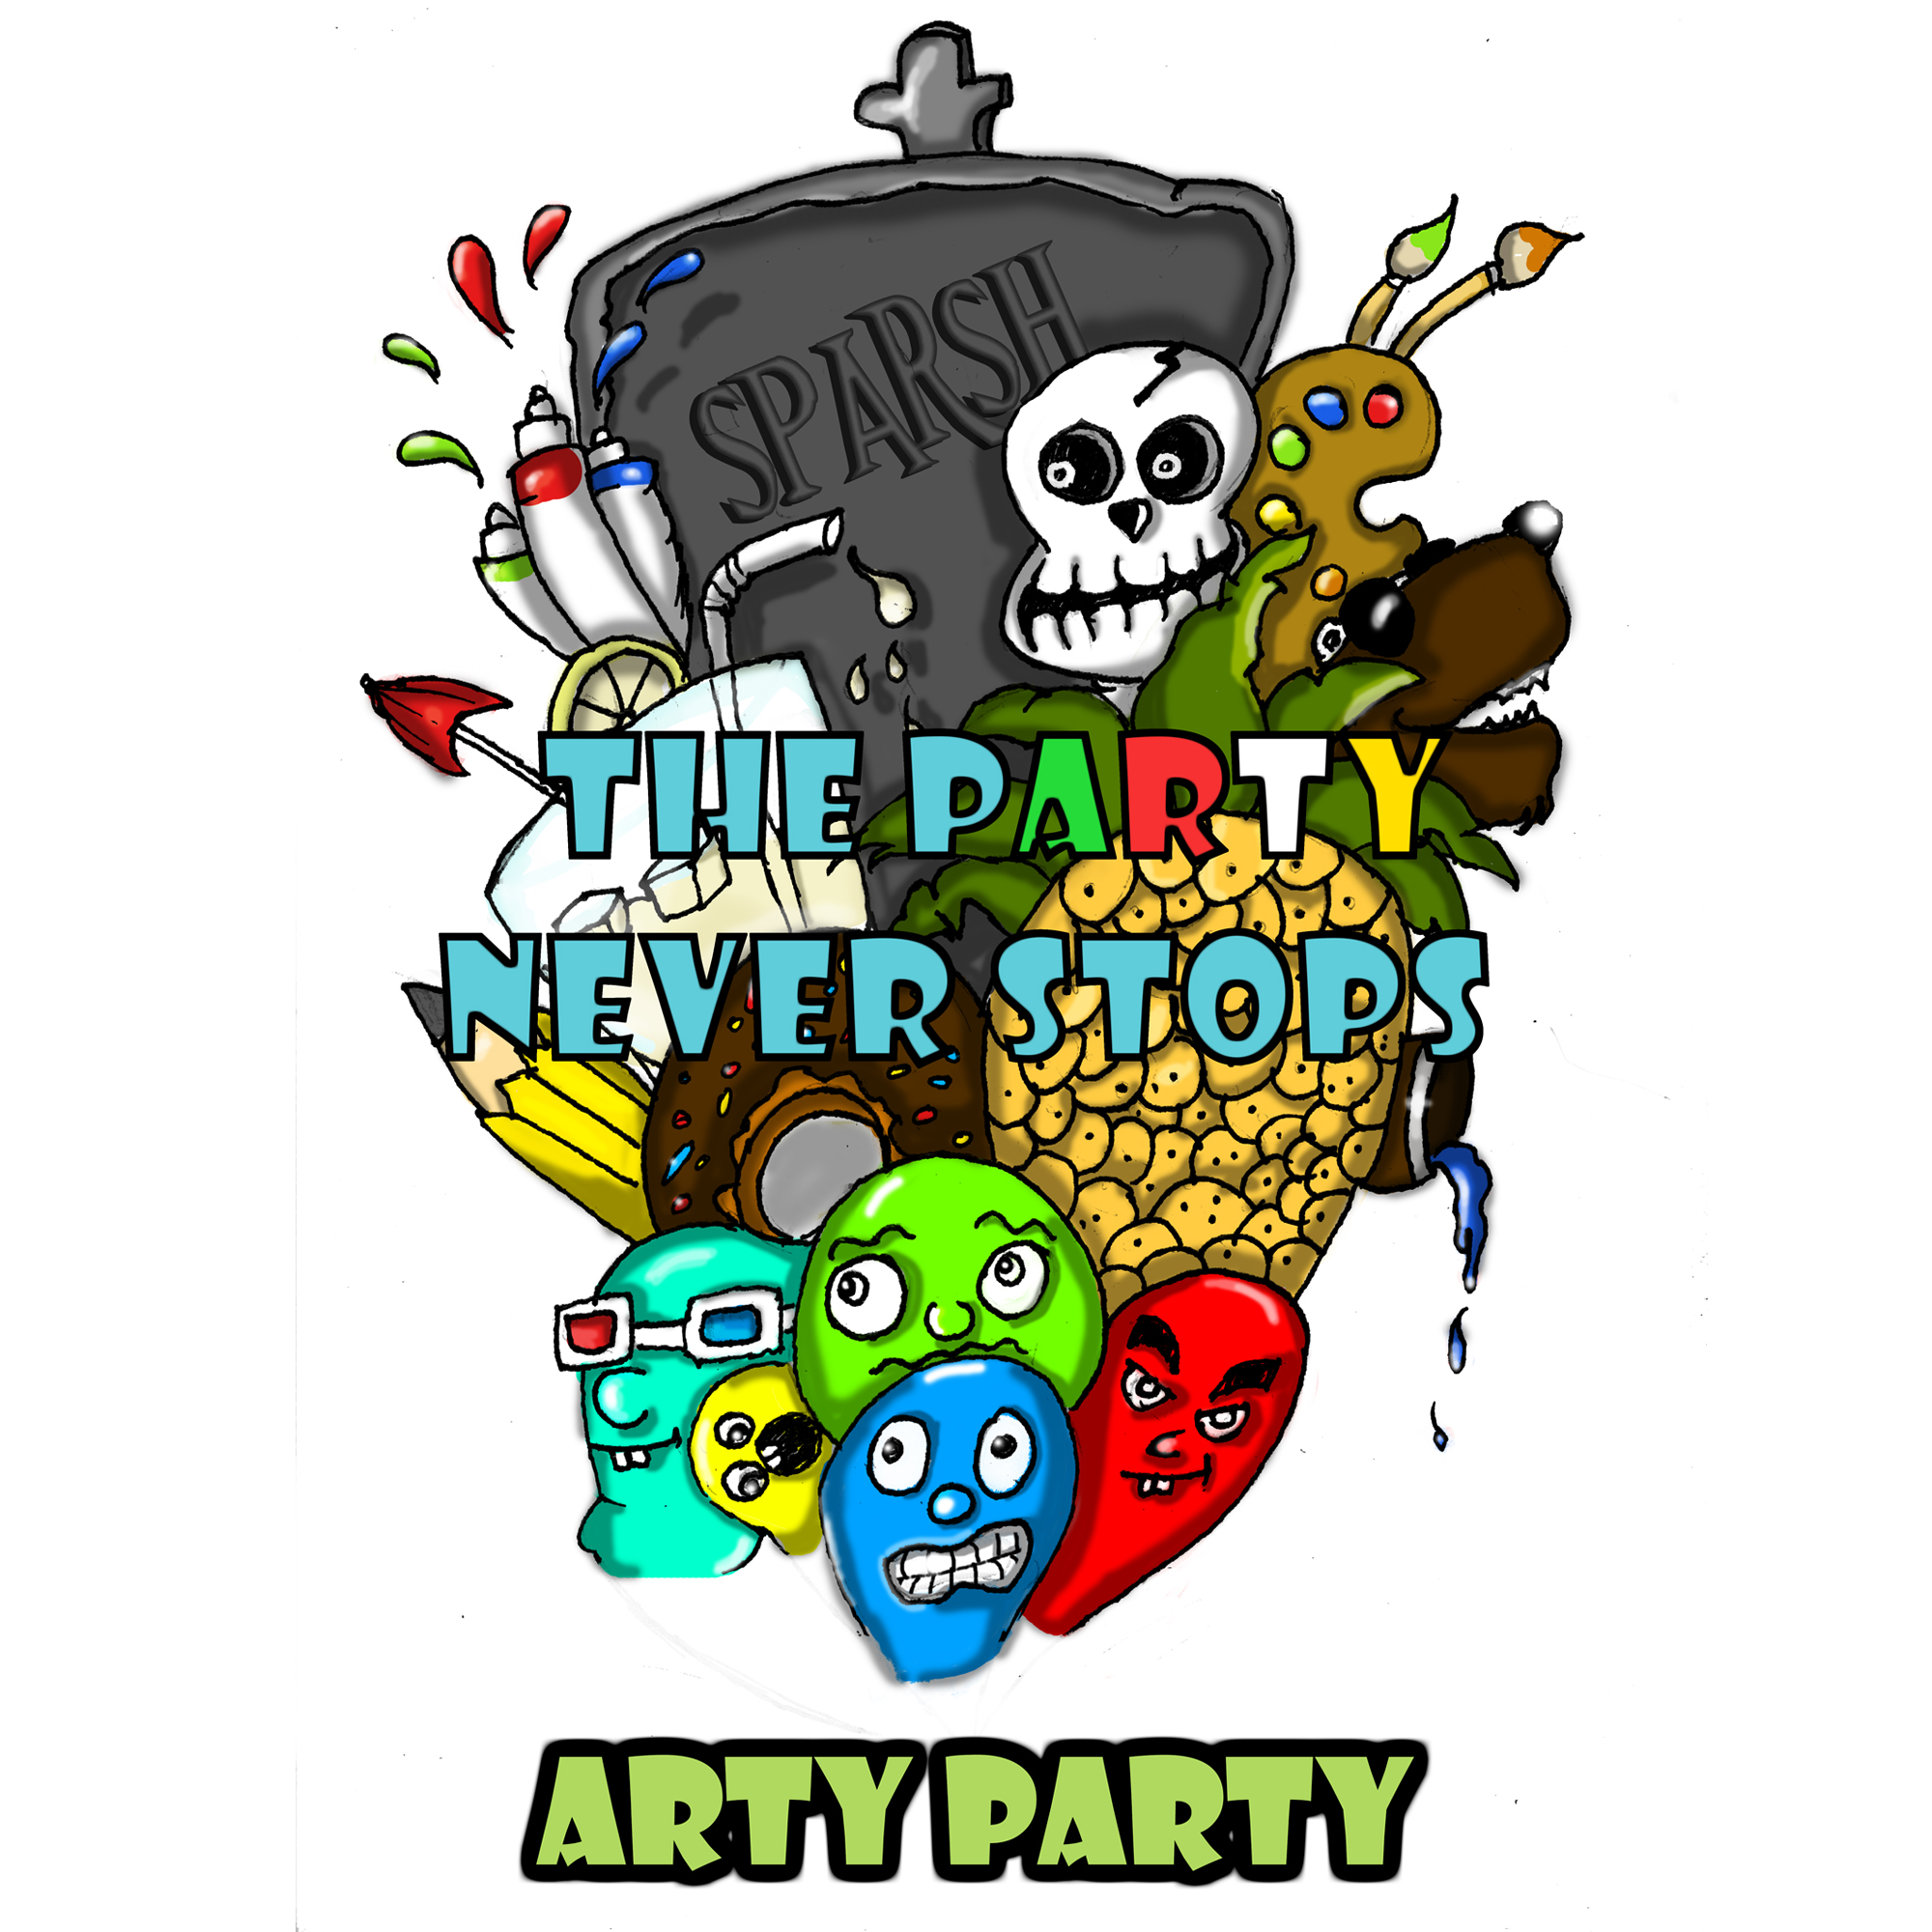 The Arty Party (Main Artwork)